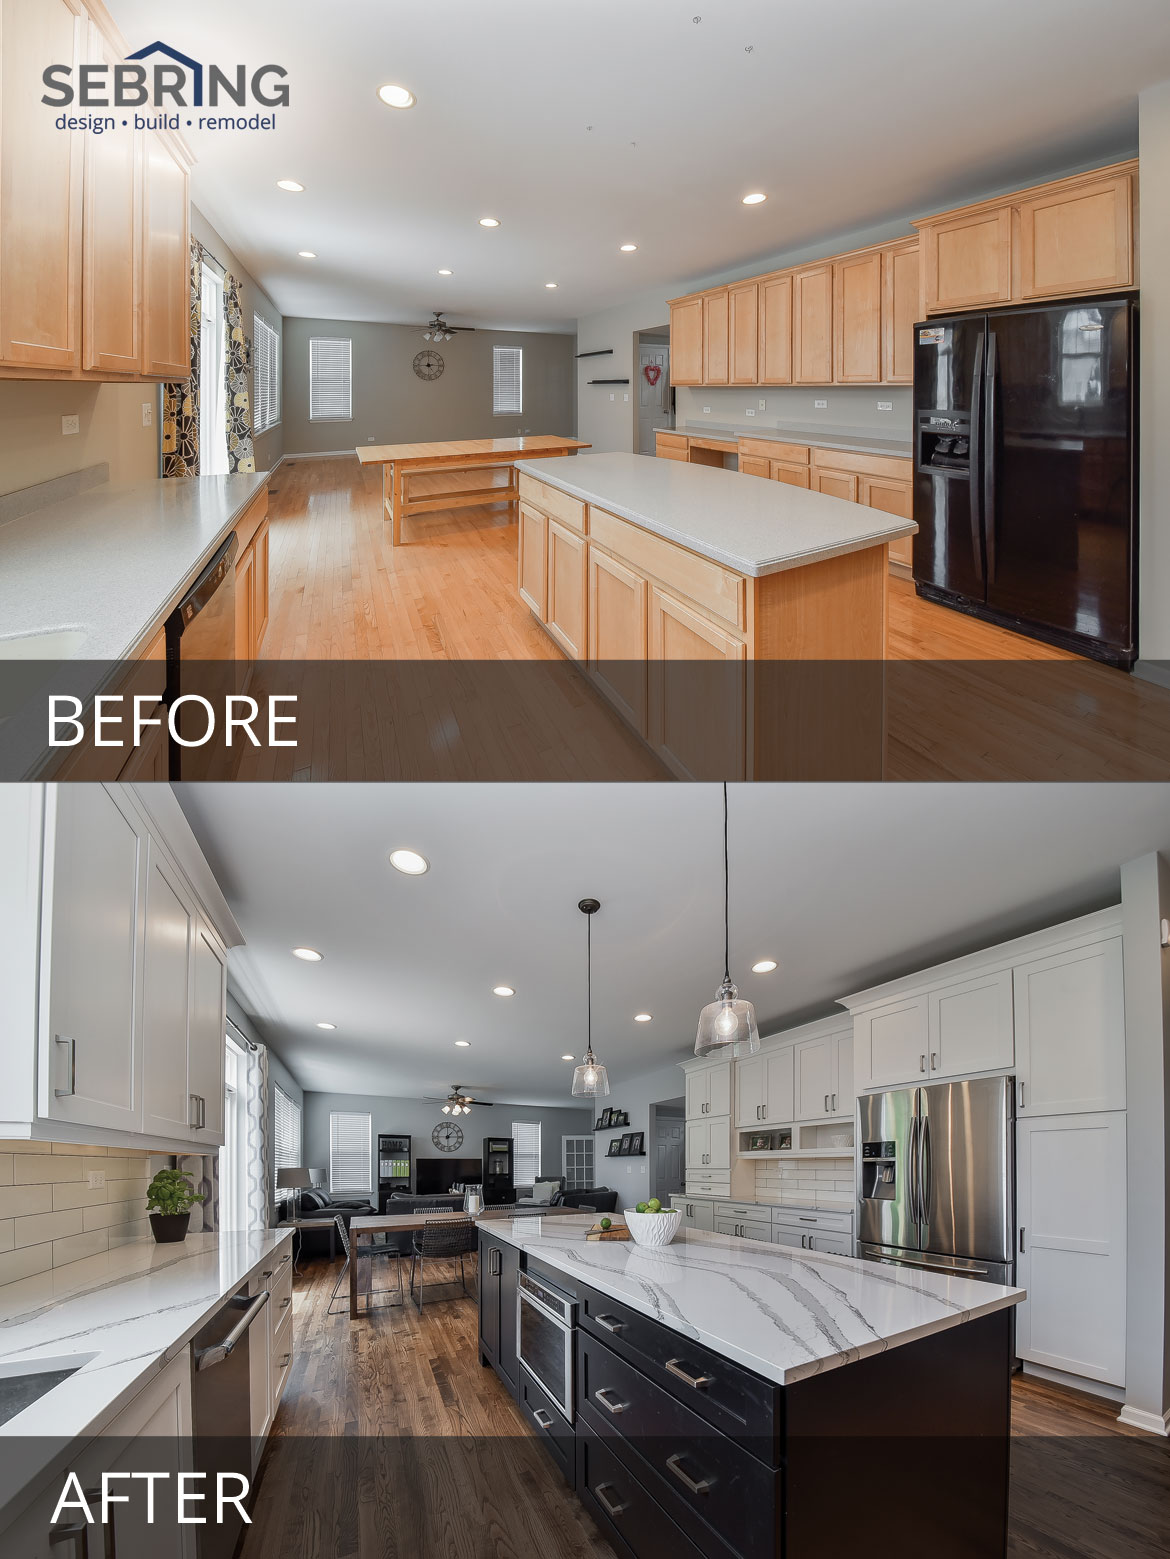 Image of: Pete Mary S Kitchen Before After Pictures Home Remodeling Contractors Sebring Design Build